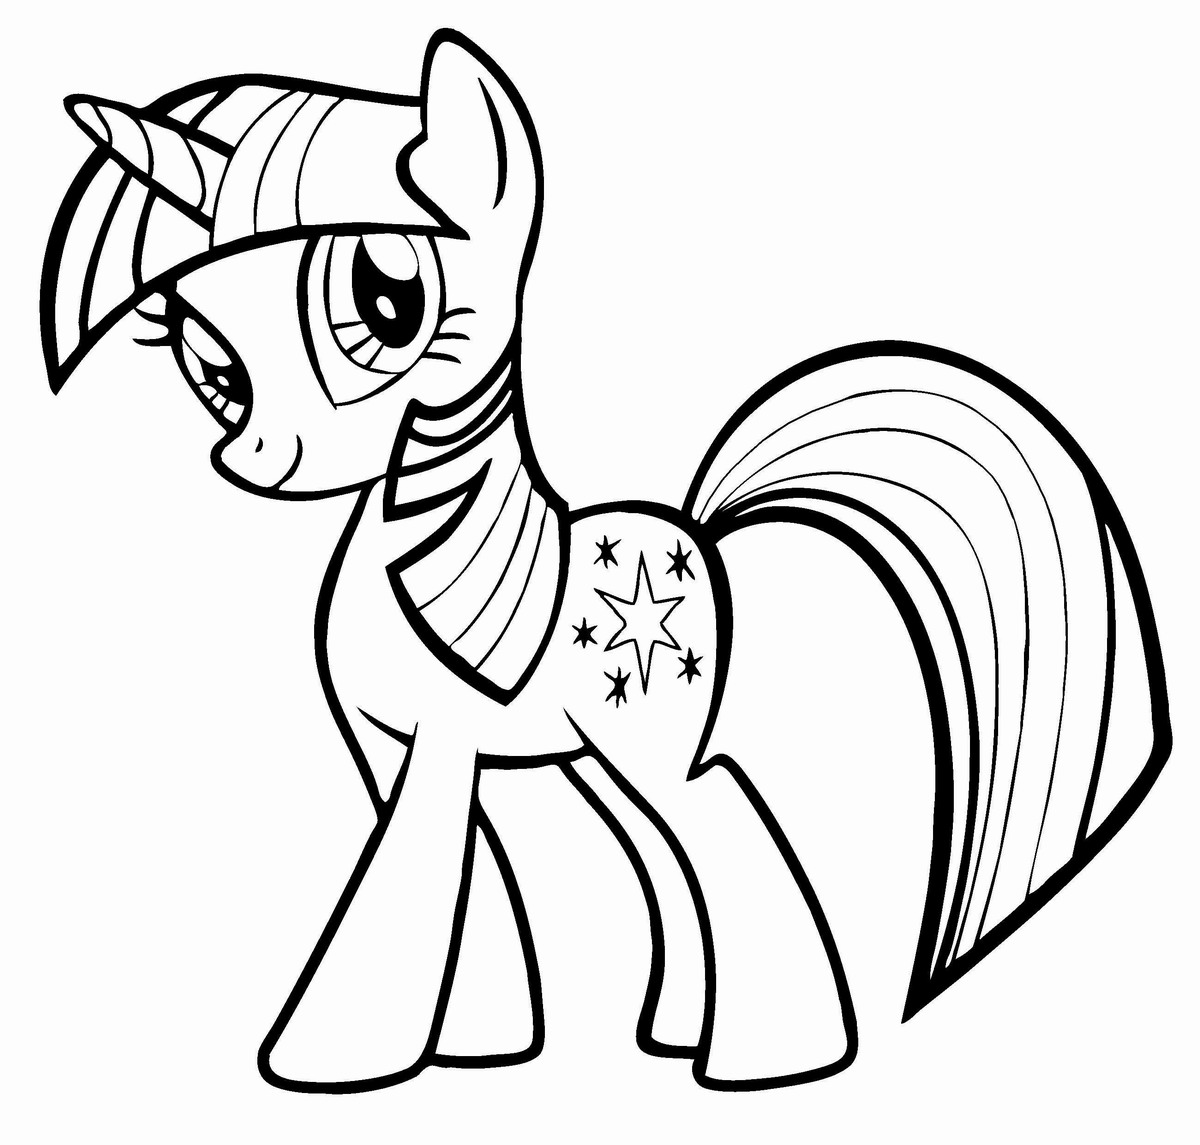 mlp coloring page my little pony coloring page coloring home page coloring mlp